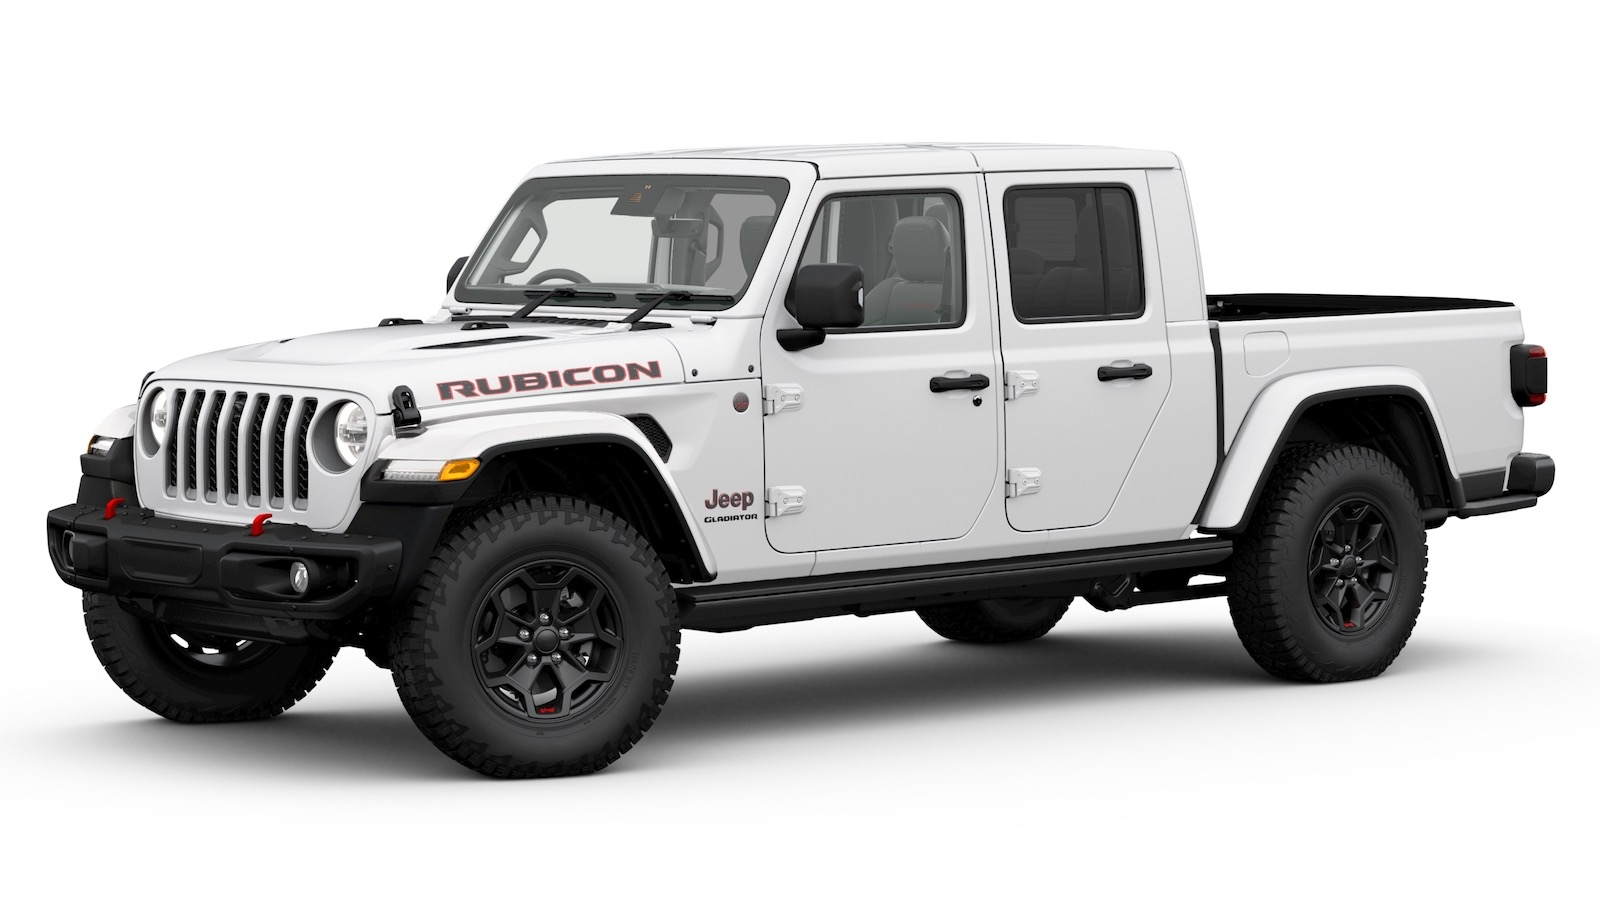 2020 Jeep Gladiator Ute Now On Sale In Australia Arrives May Performancedrive